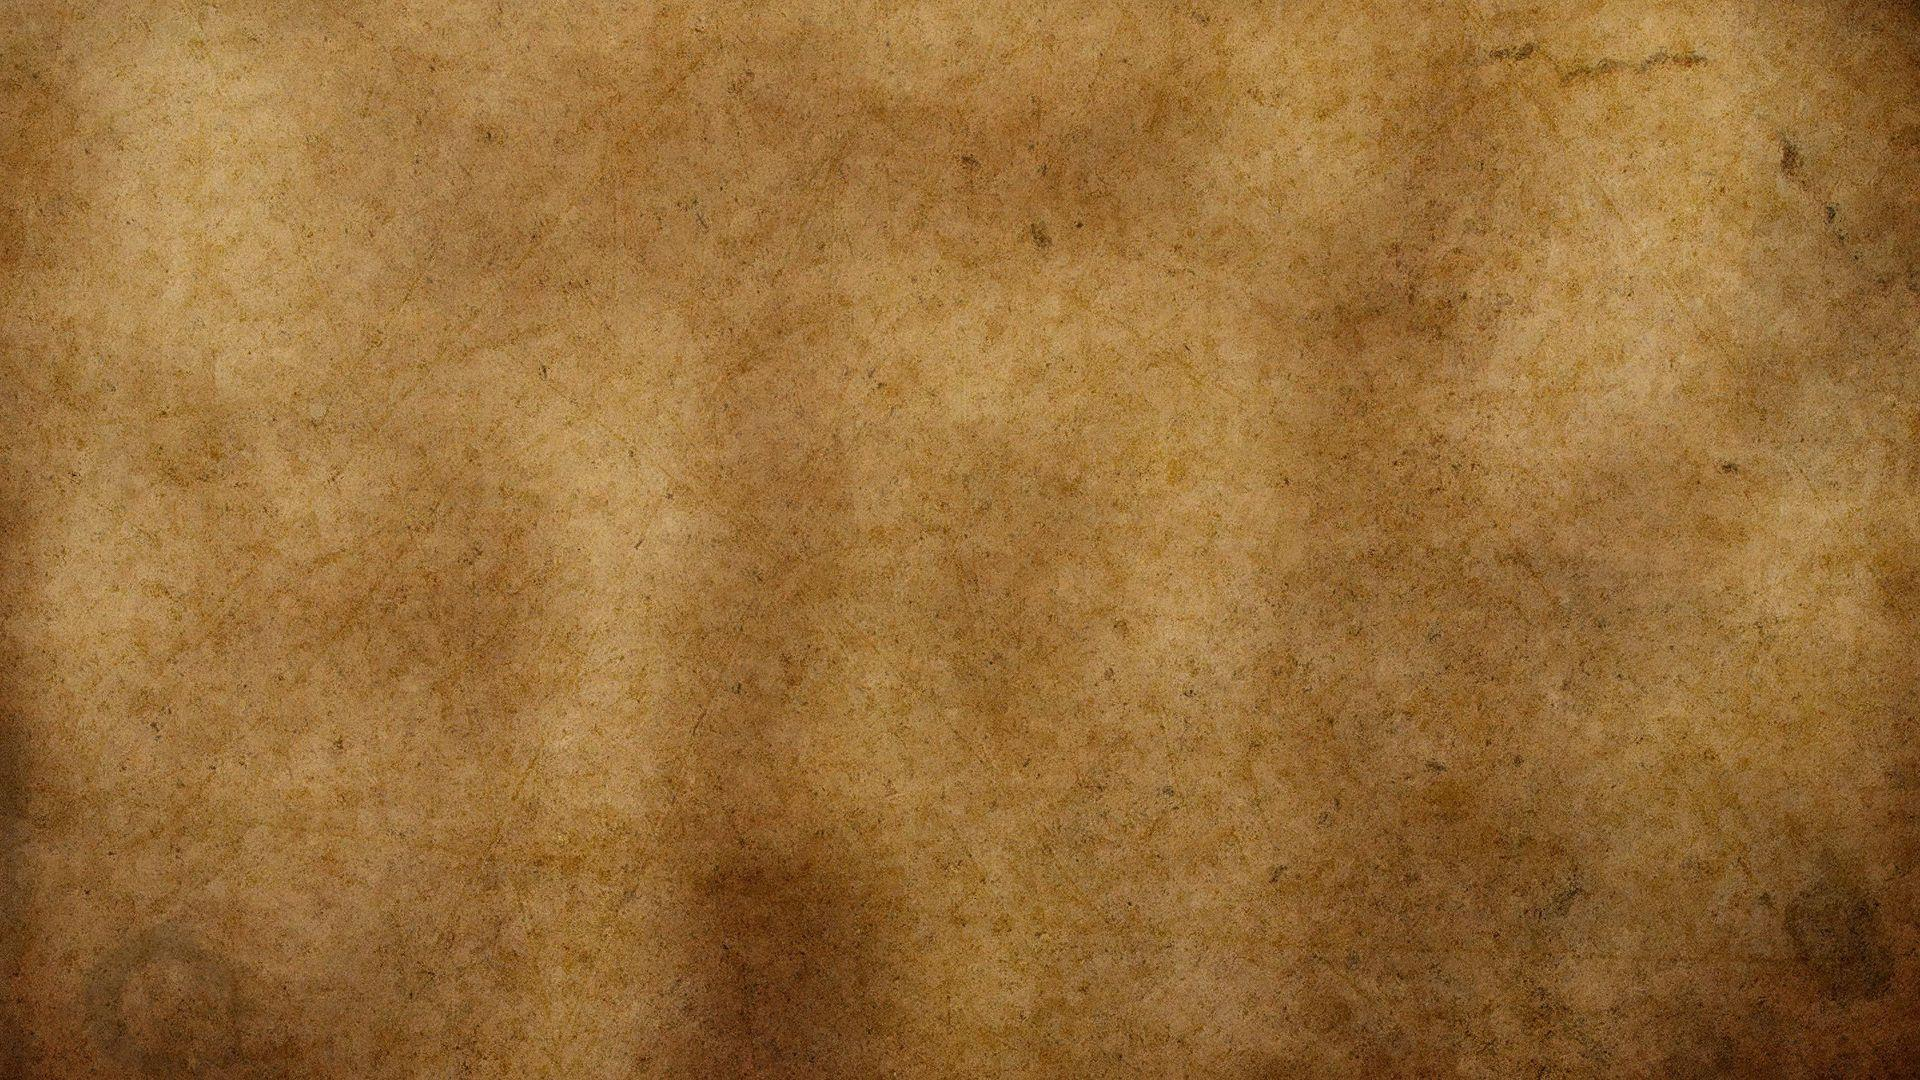 wallpaper 3840x2160 abstract brown - photo #7